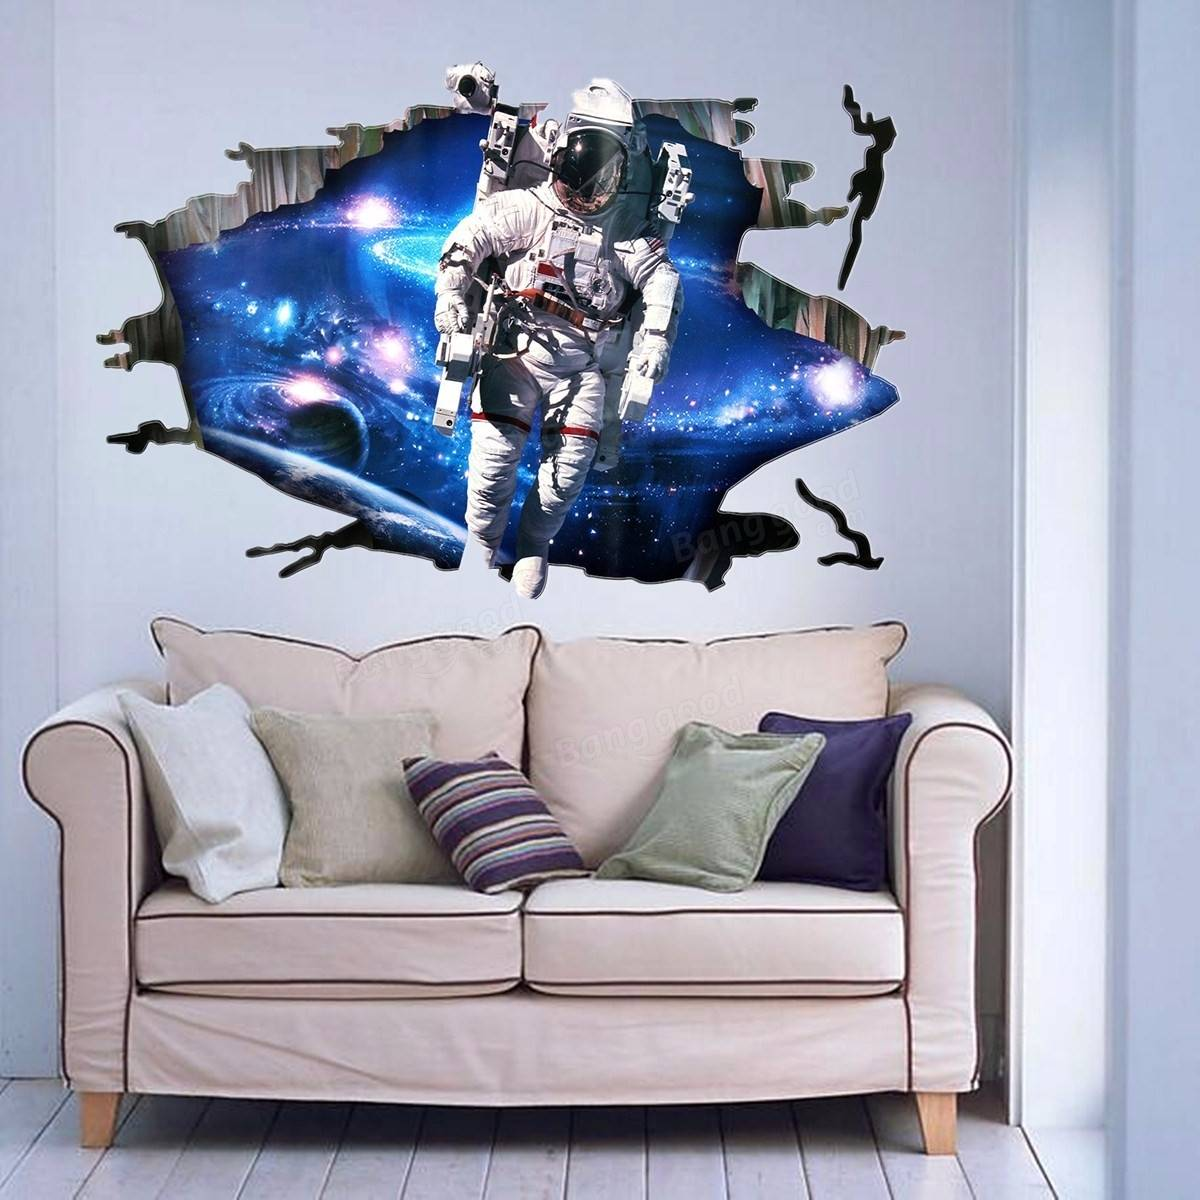 3d wall stickers wallpaper space astronauts decor kids room decal 3d wall stickers wallpaper space astronauts decor kids room decal art gifts amipublicfo Image collections